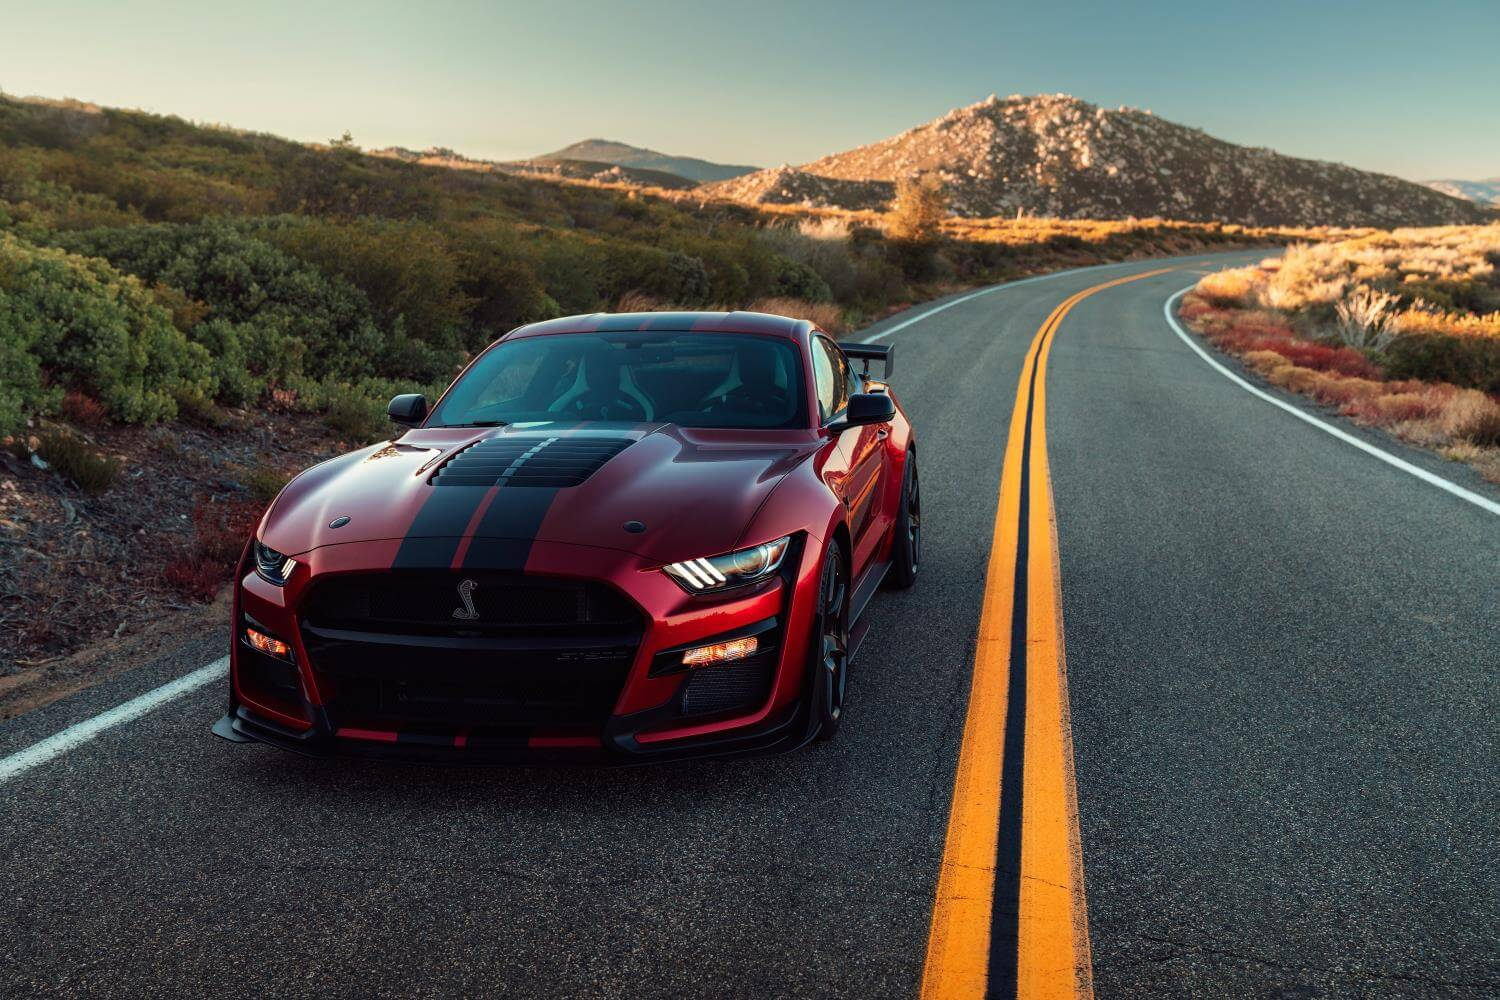 Ford Mustang Shelby GT500 2020: frontal